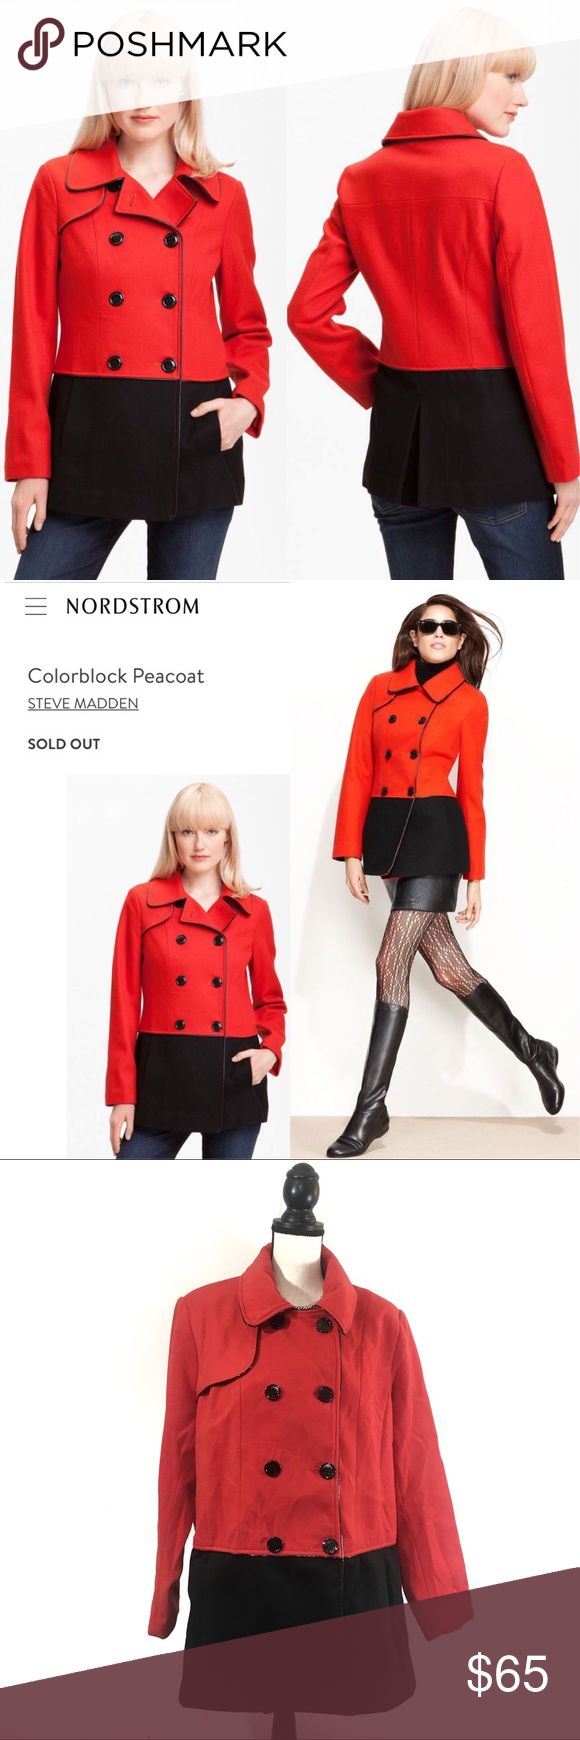 """Steve Madden Color-block Red Black Peacoat Jacket Size: 1X Women's • SOLD OUT  A wool-blend peacoat gets a graphic update in a sharp combination of paprika and black. Patent piping adds a polished finish to the double-breasted style. * Gunflap. * On-seam front pockets. * Back inverted pleat. * Approx. length from shoulder: 30"""". * Fully lined. * Wool/polyester; dry clean. * By Steve Madden; imported.  Dimensions: * Length 31.5"""" * Waist 26"""" * Hips 50"""" * Bust 29"""" * Sleeve 25""""  Condition:  Nice…"""